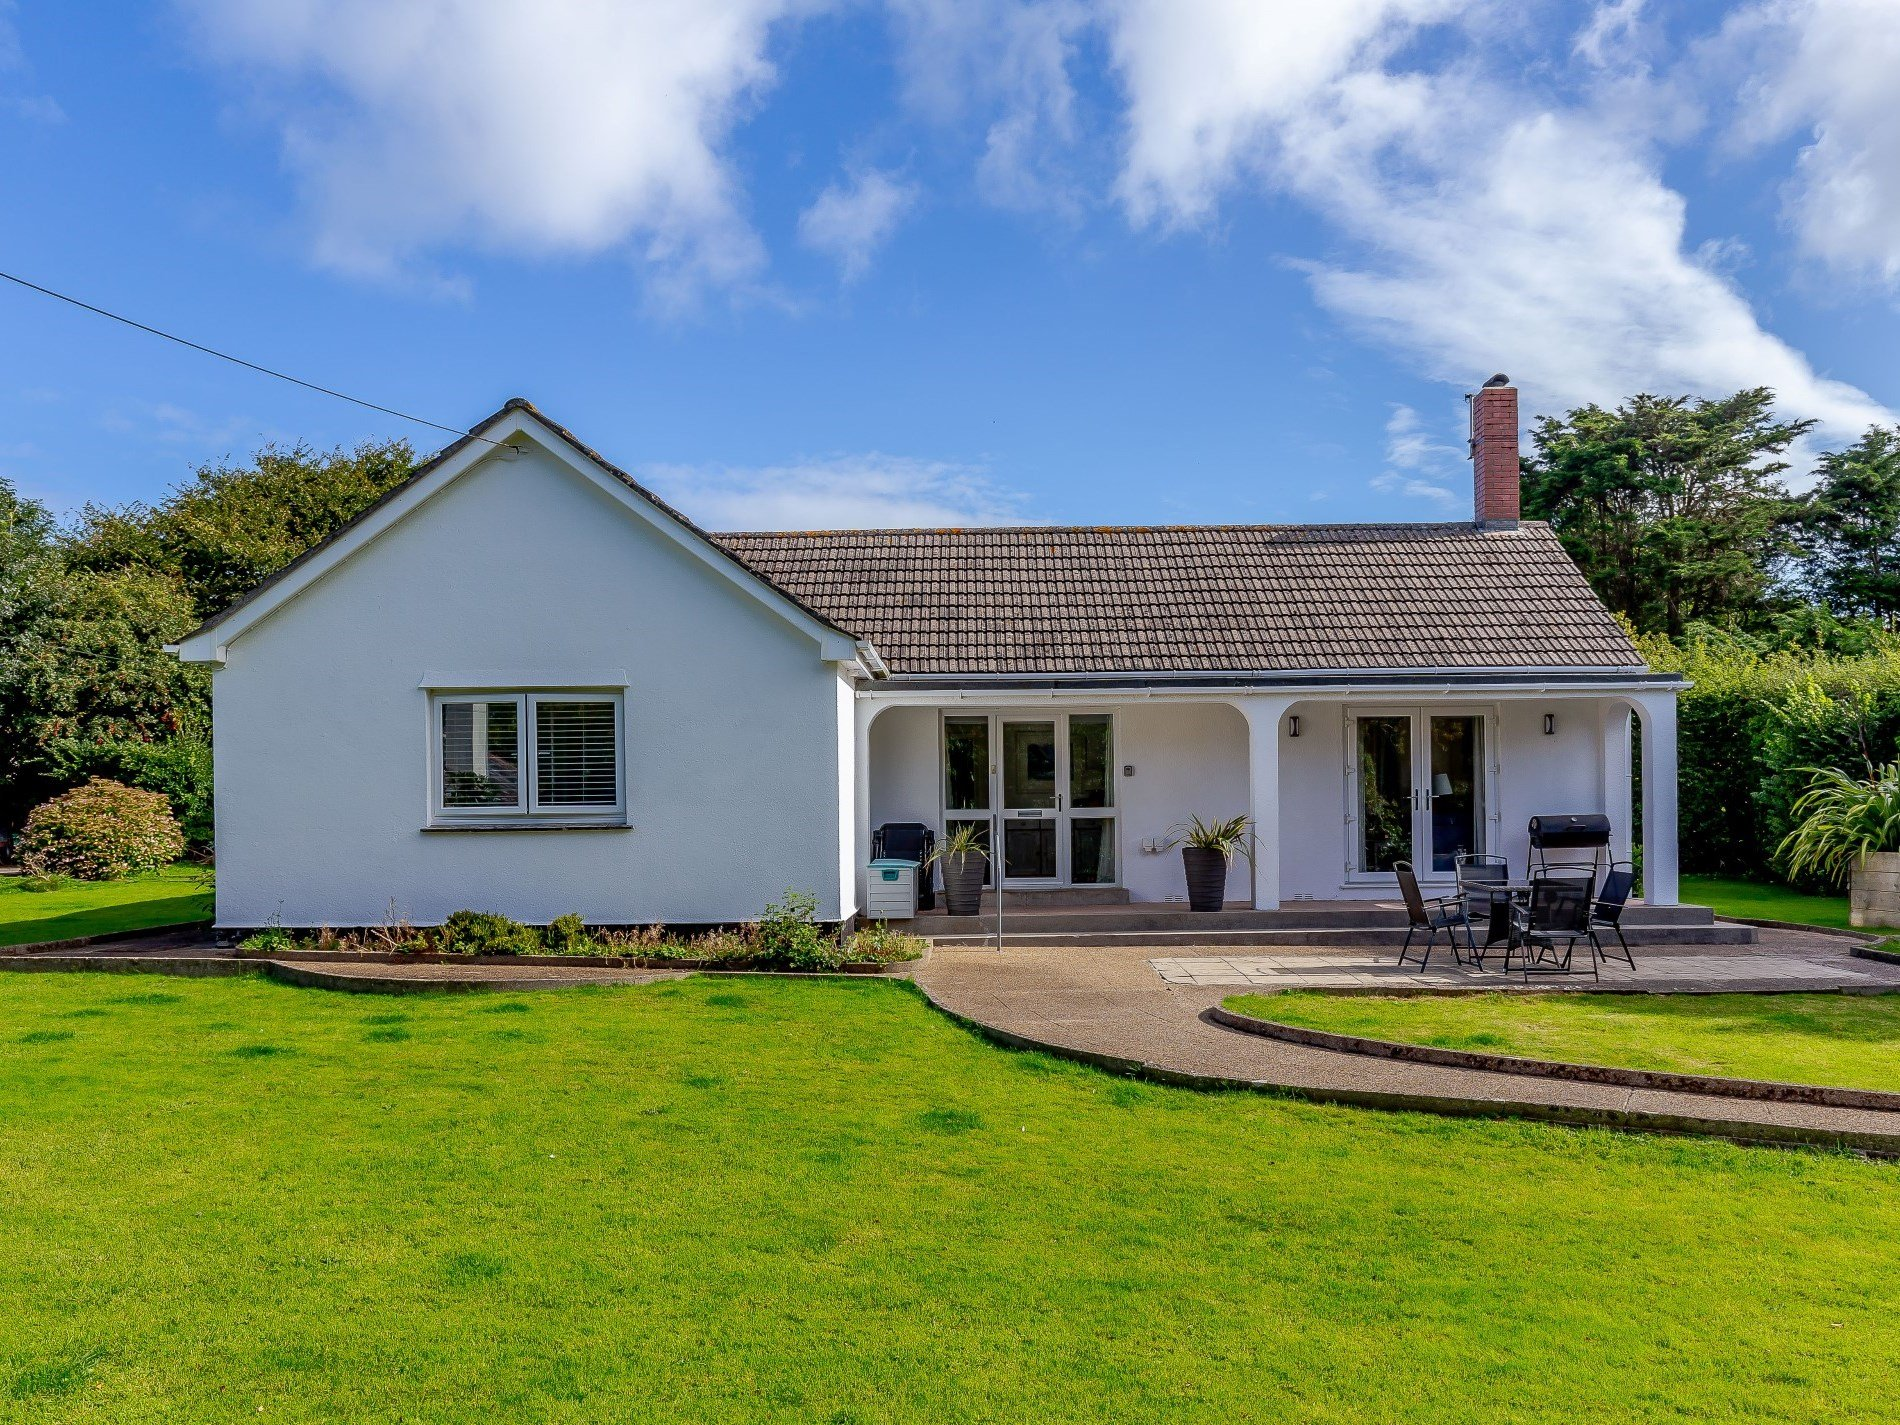 2 Bedroom Bungalow in North Cornwall, Cornwall